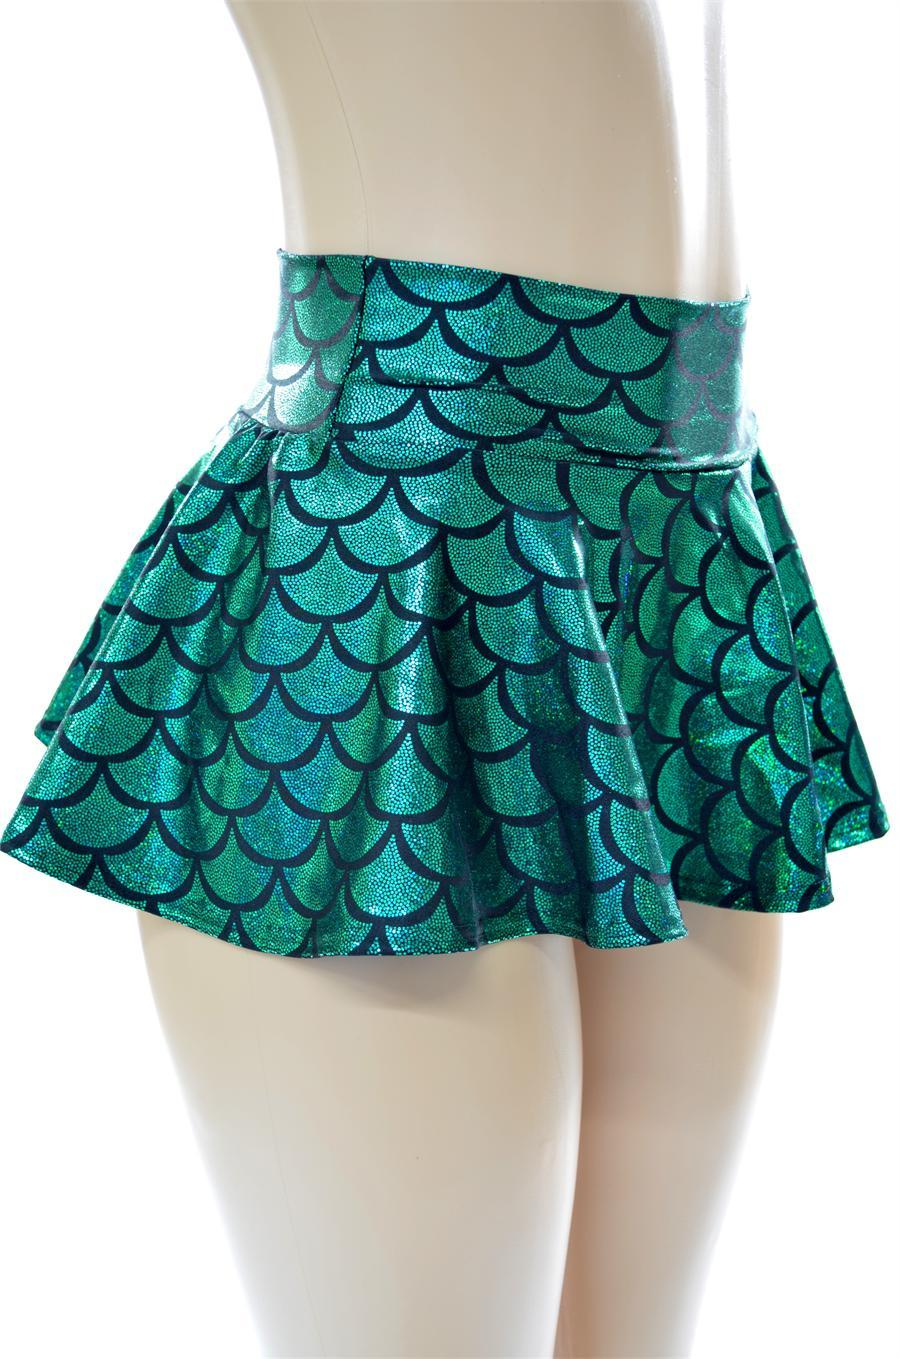 Emerald Green Mermaid Mini Rave Skirt From Coquetry Clothing